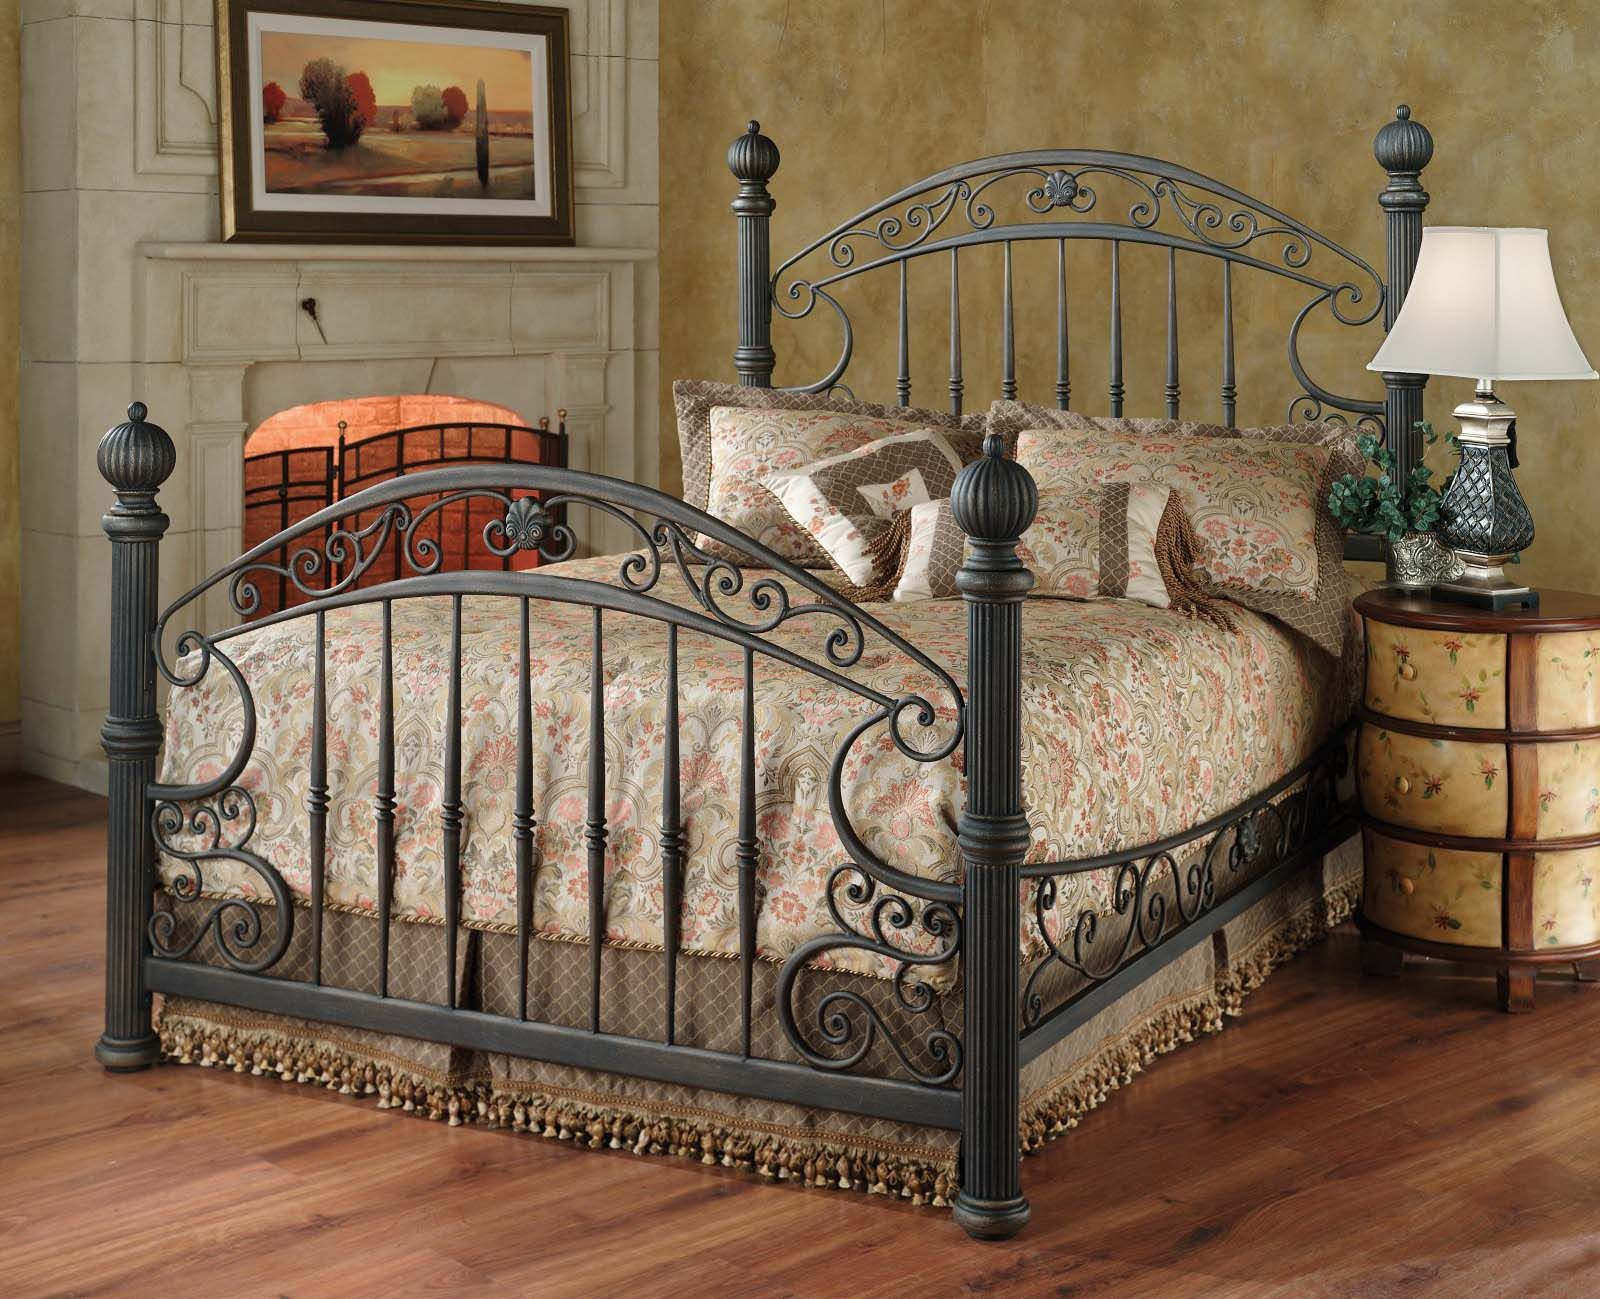 I Have A Thing For Four Poster Beds And I Love This One Wrought Iron Beds Iron Bed Frame Iron Bed